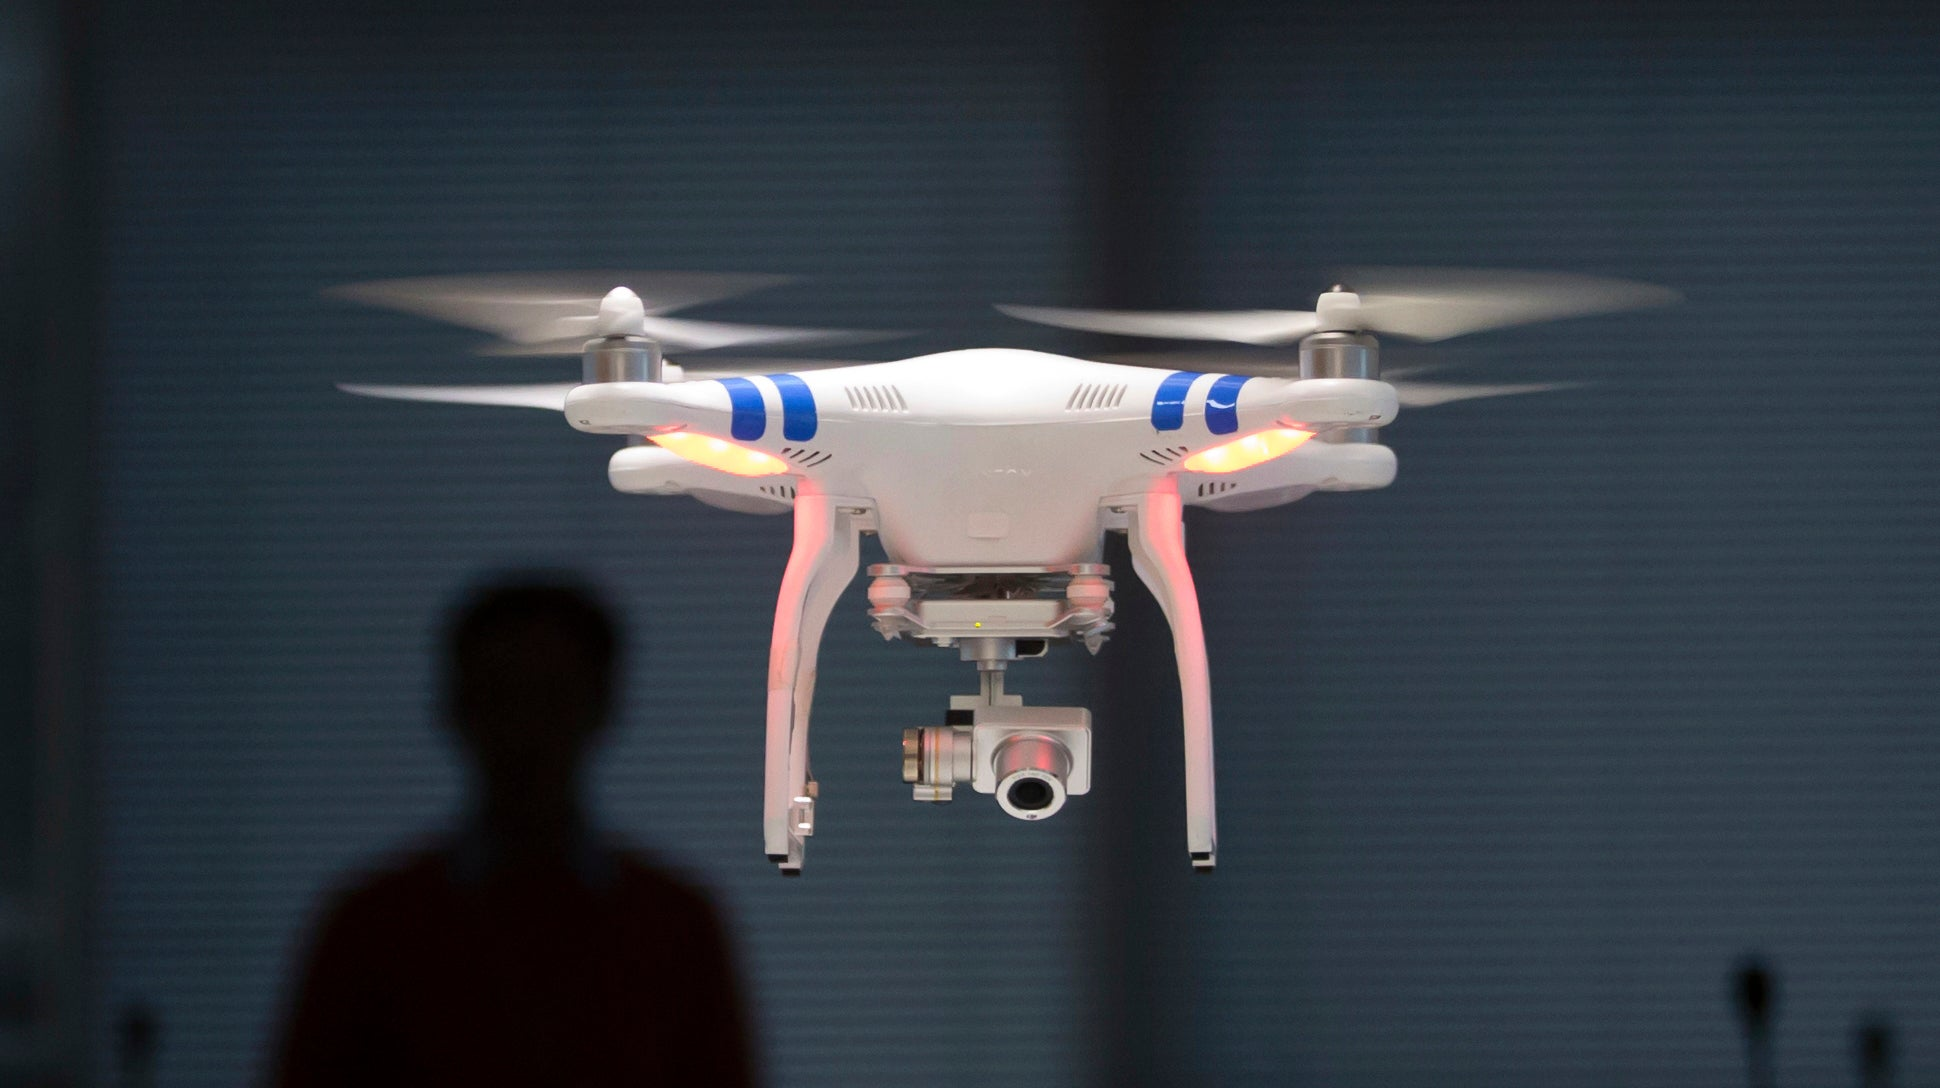 Hobbyists Lose Fight To Escape The FAA's Toy Drone Rules